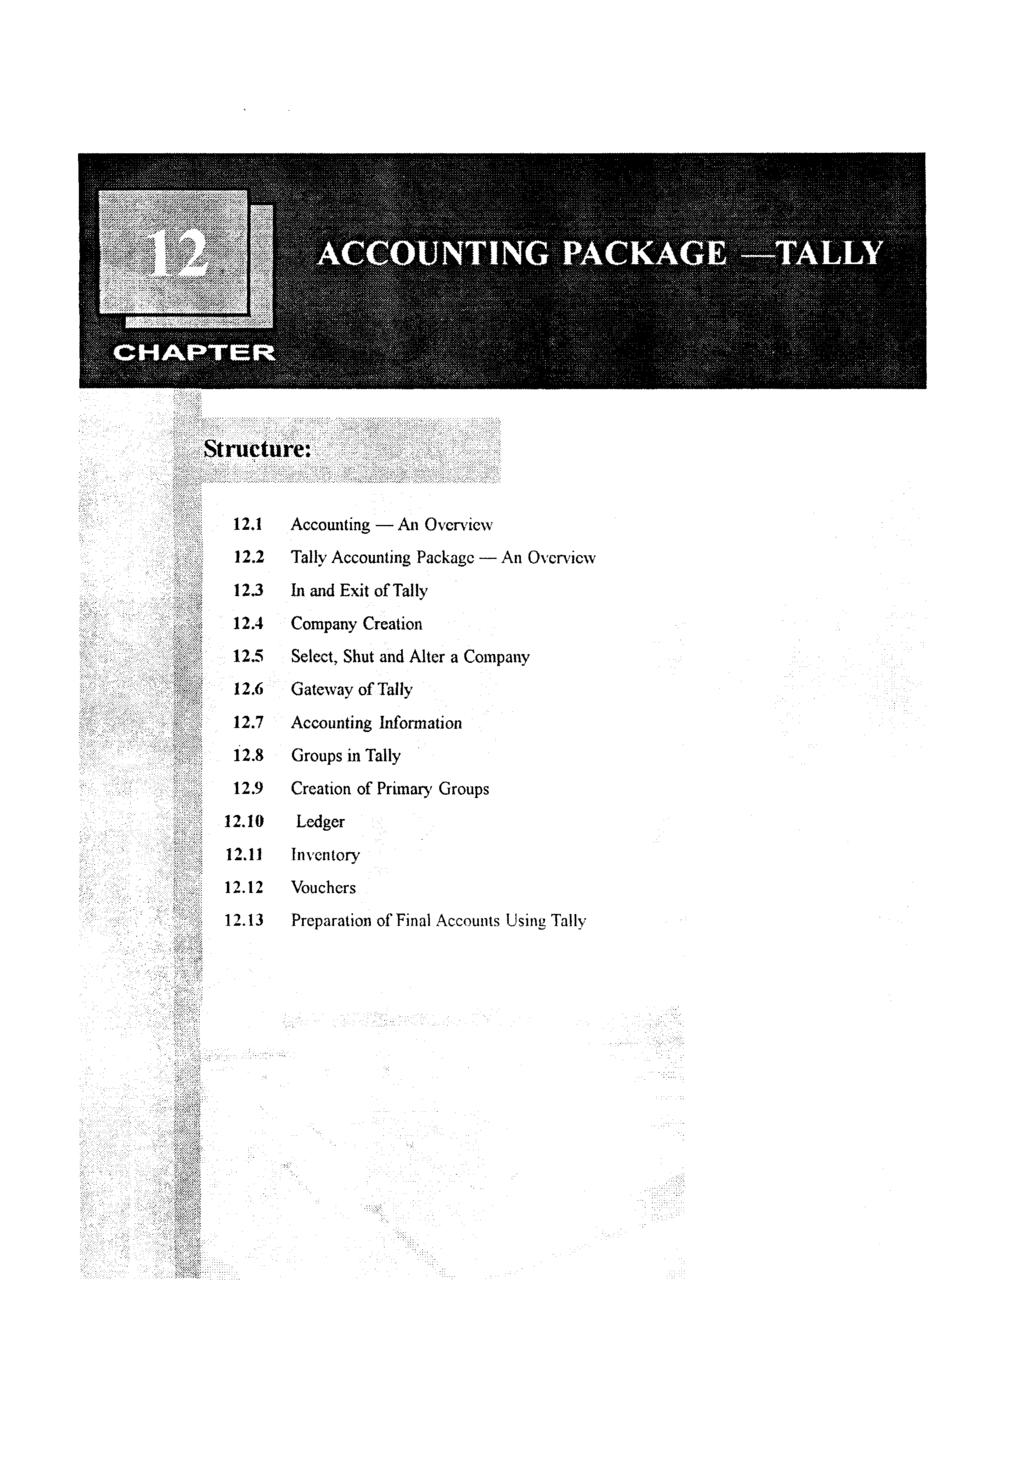 Structure Accounting An Overview Tally Package Voucher Deposit Fz Cell 500 121 122 123 124 125 126 127 128 129 1219 1211 12